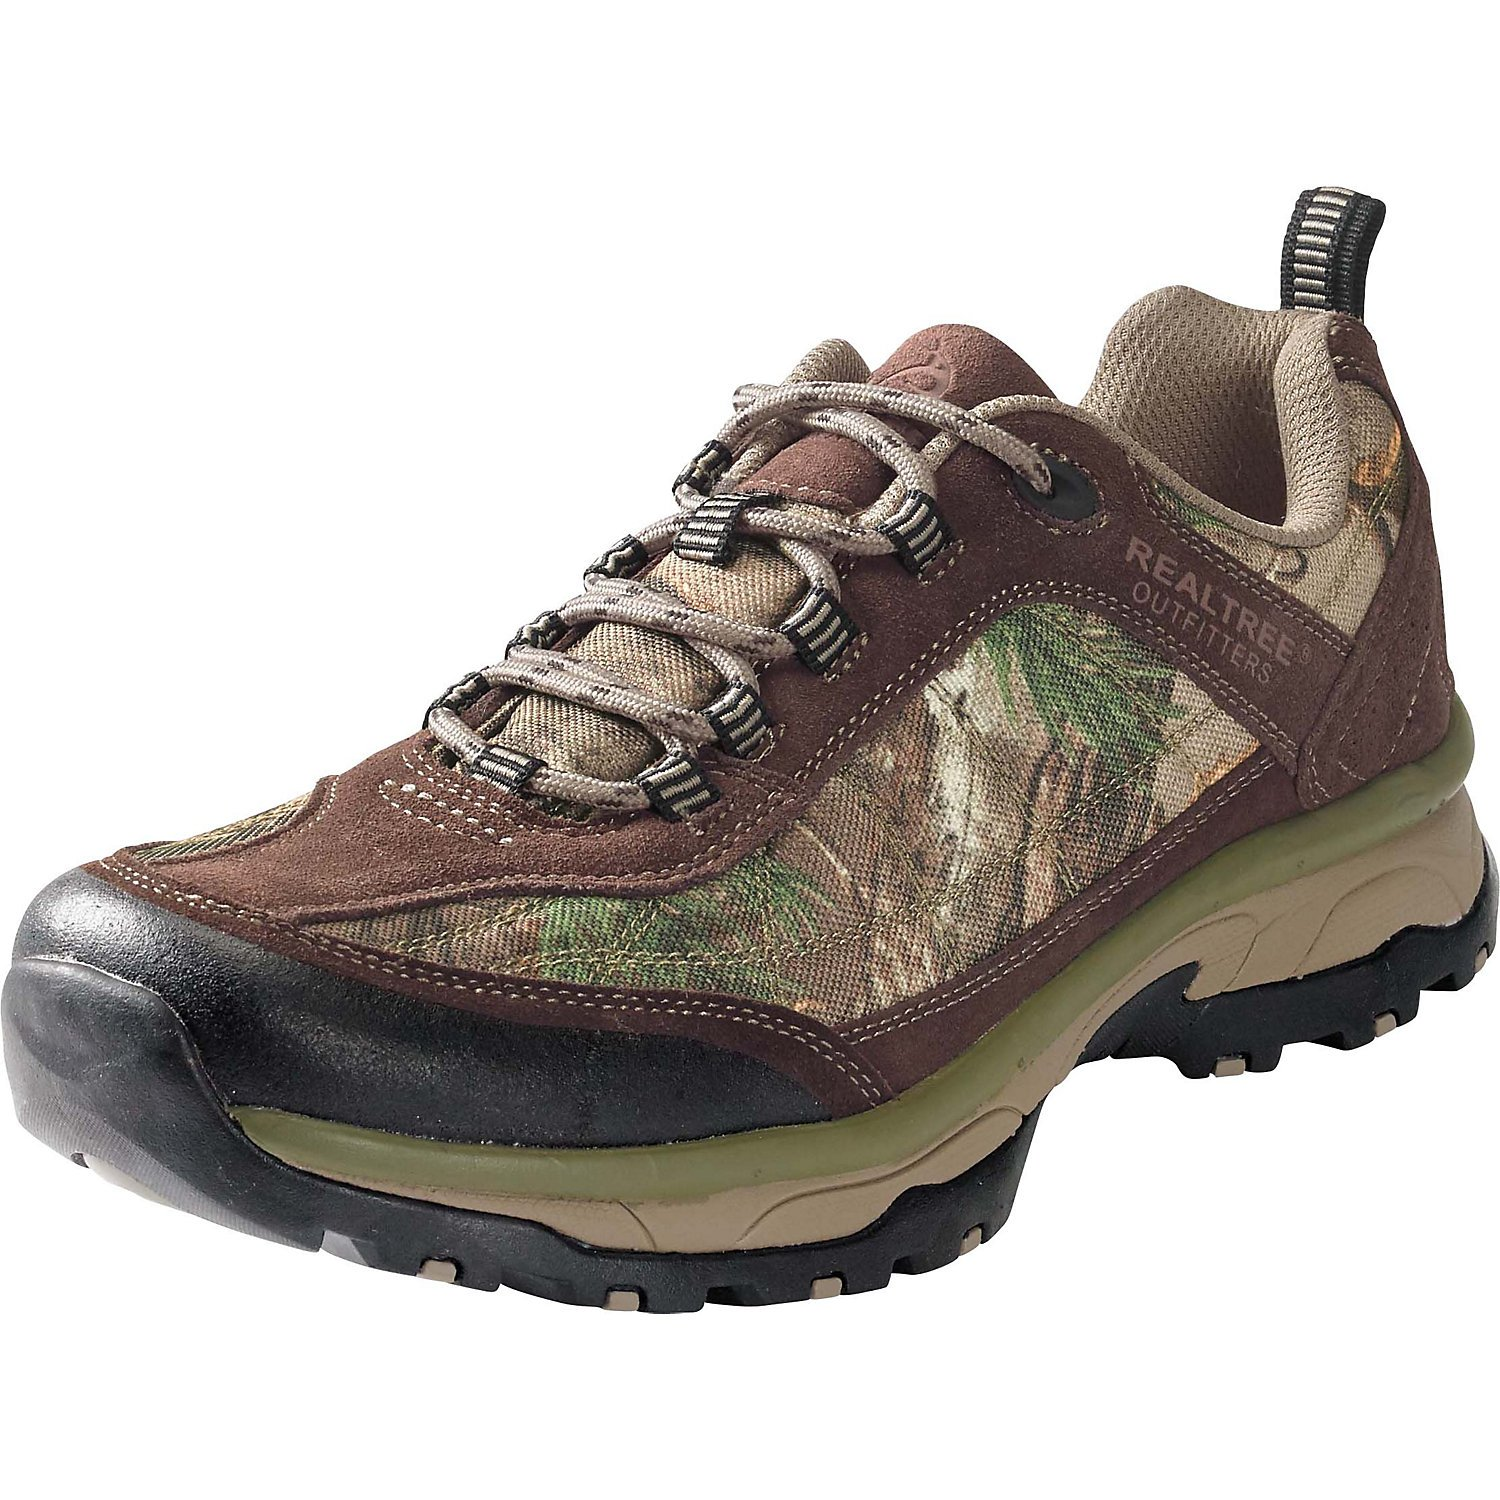 Legendary Whitetails Men's Clay Athletic Shoes Brown 10.5 by Legendary Whitetails